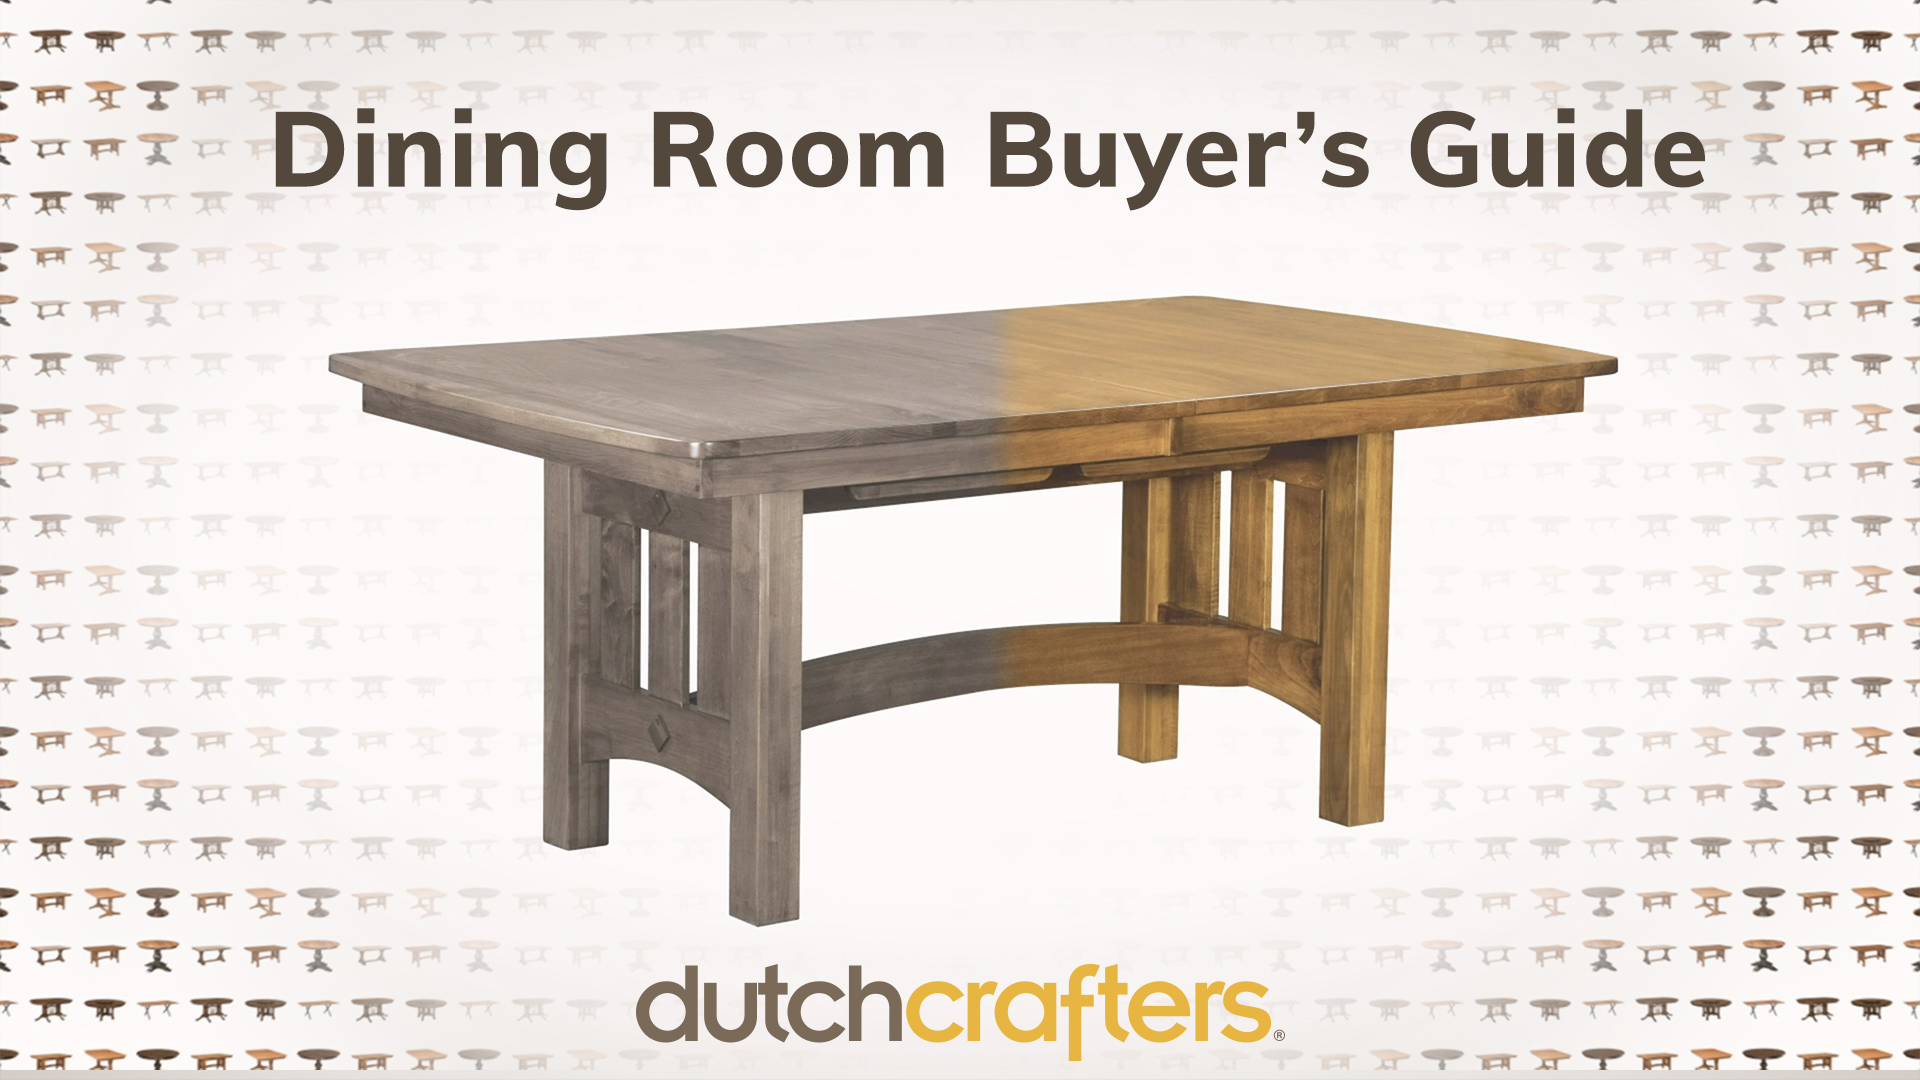 Dining Room Buyer's Guide